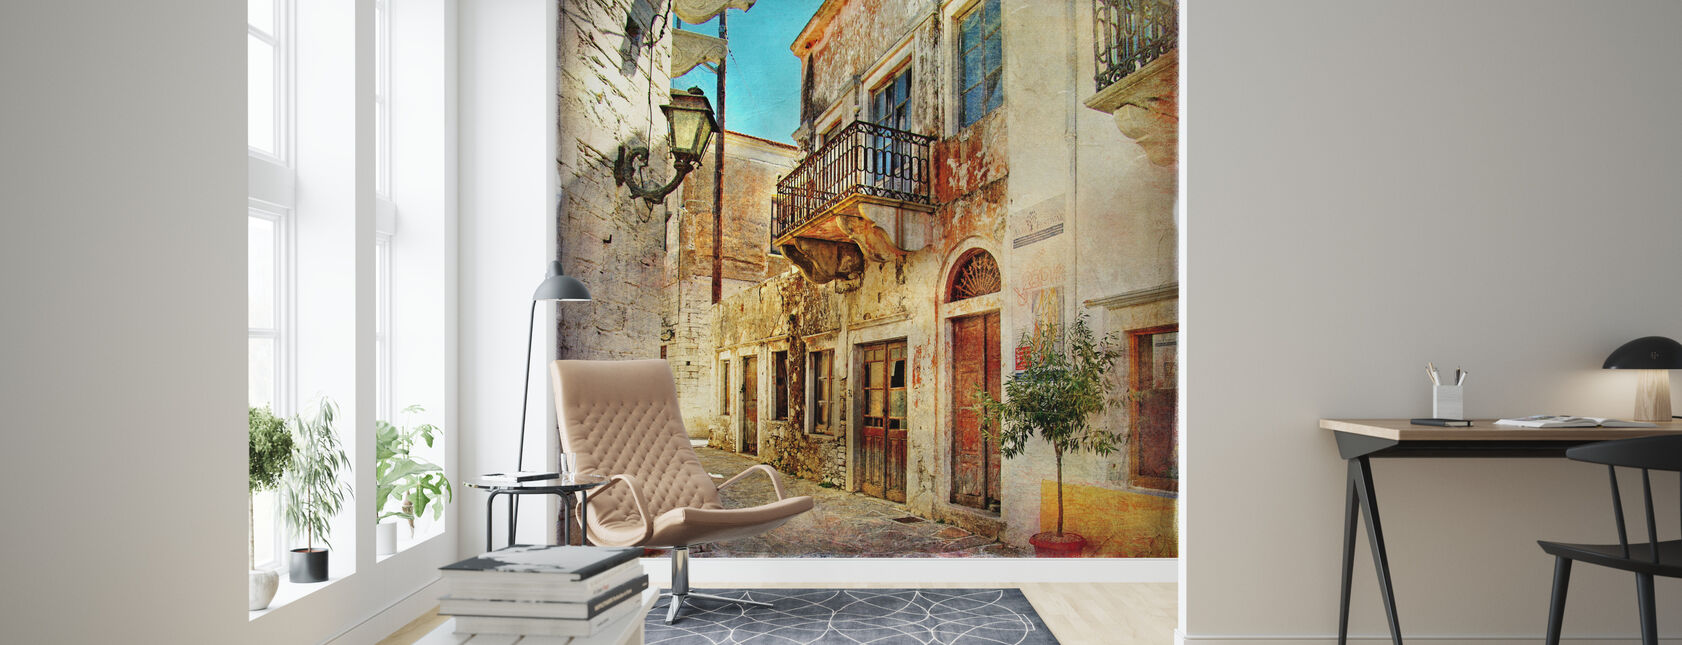 Old Street of Greece - Wallpaper - Living Room